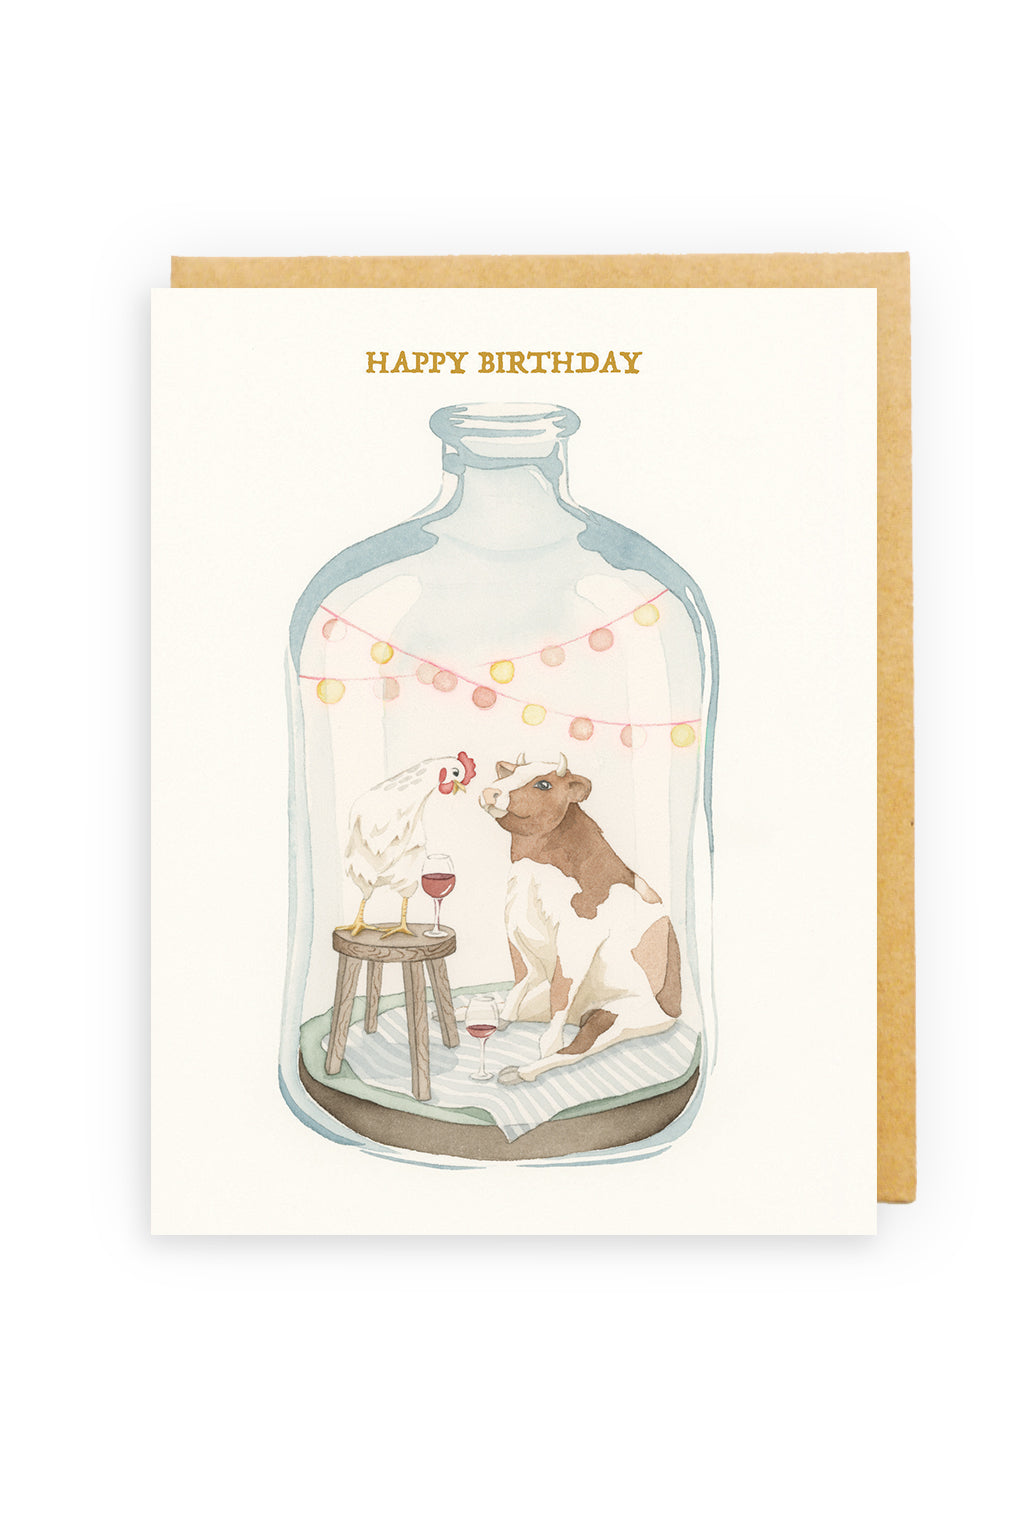 Squirrel Design Studio-Isolation Party For Two  - Greeting Card-Mott and Mulberry